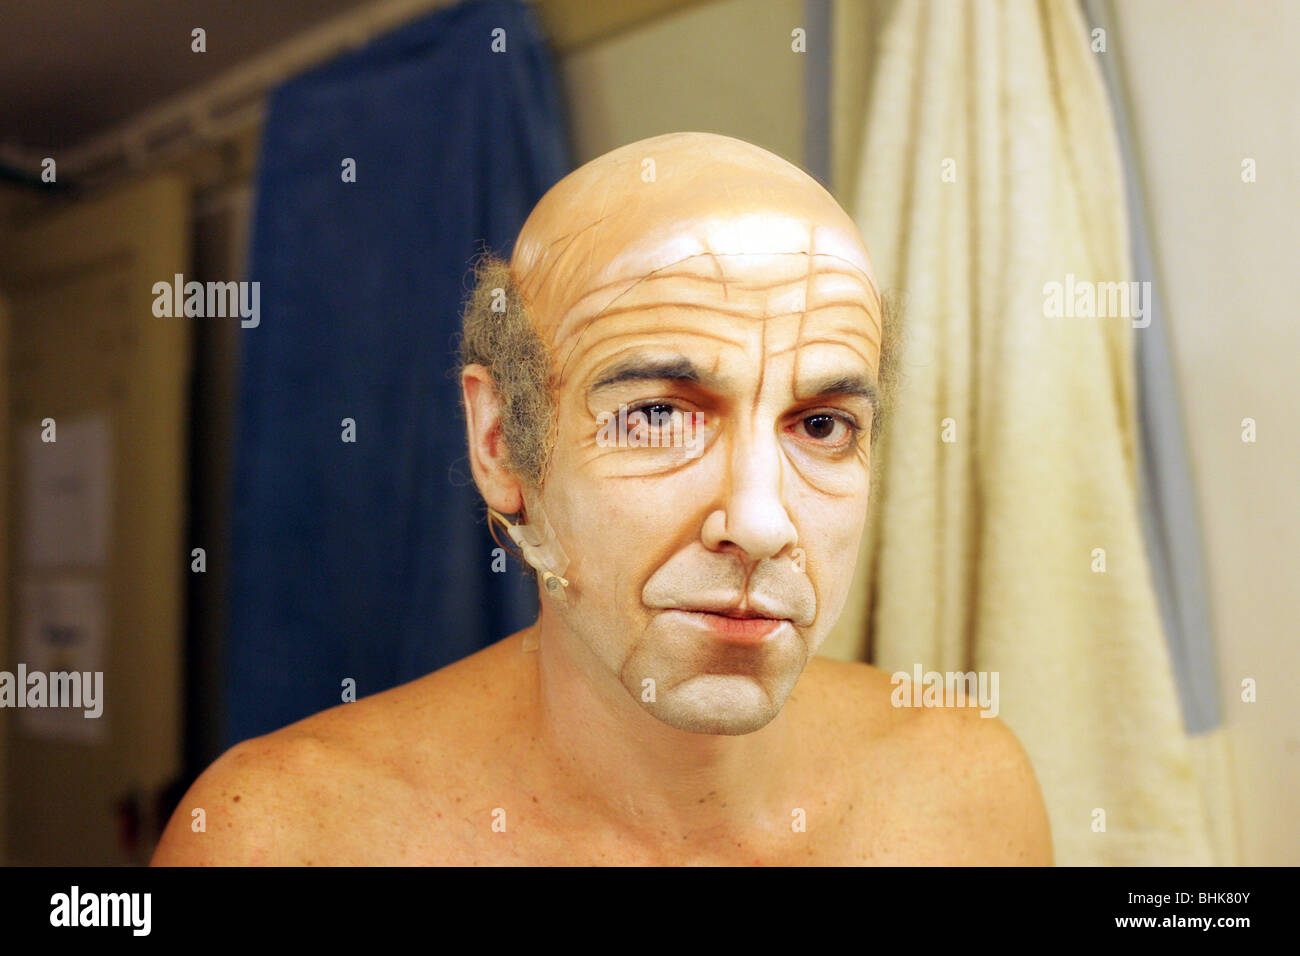 Portrait of actor with make up. - Stock Image